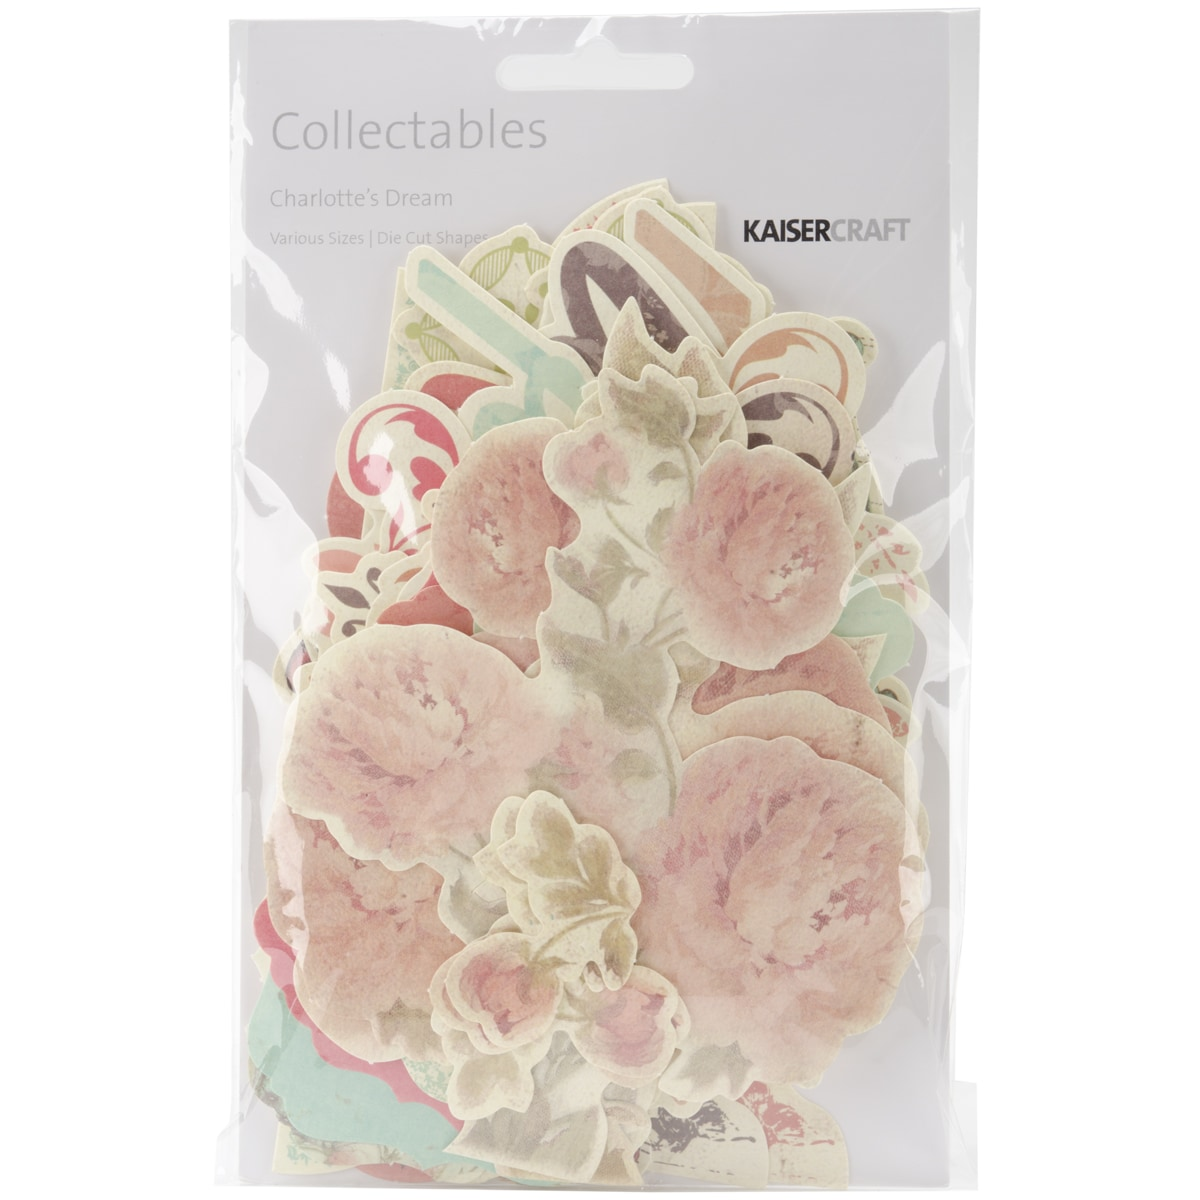 Charlotte's Dream Collectables Cardstock Die-Cuts 46/Pkg